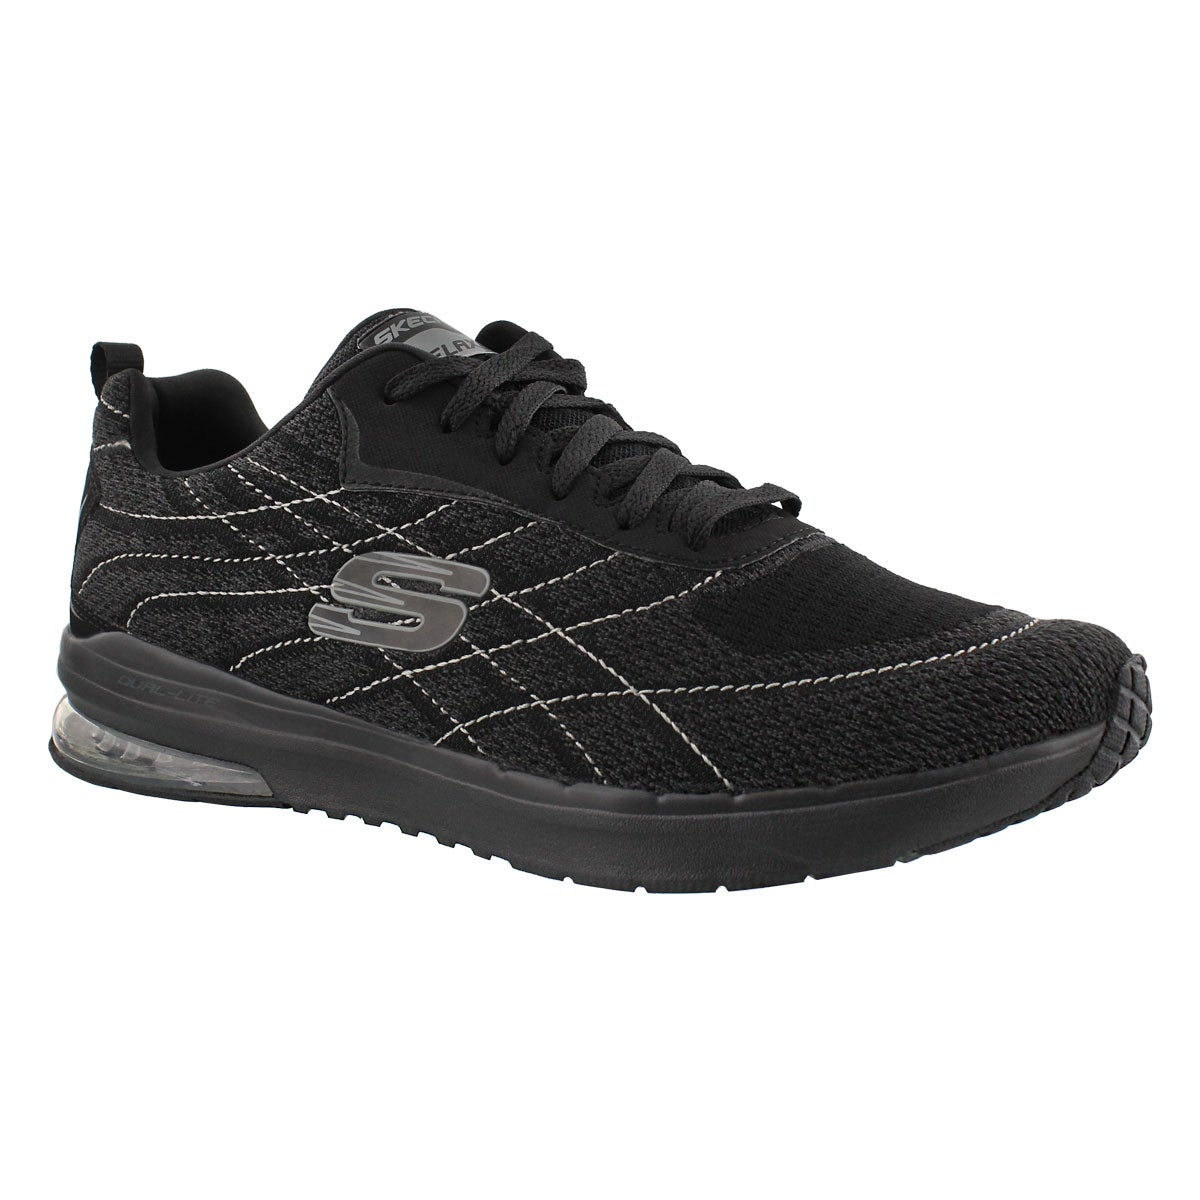 Men's SKECH-AIR INFINITY black sneakers